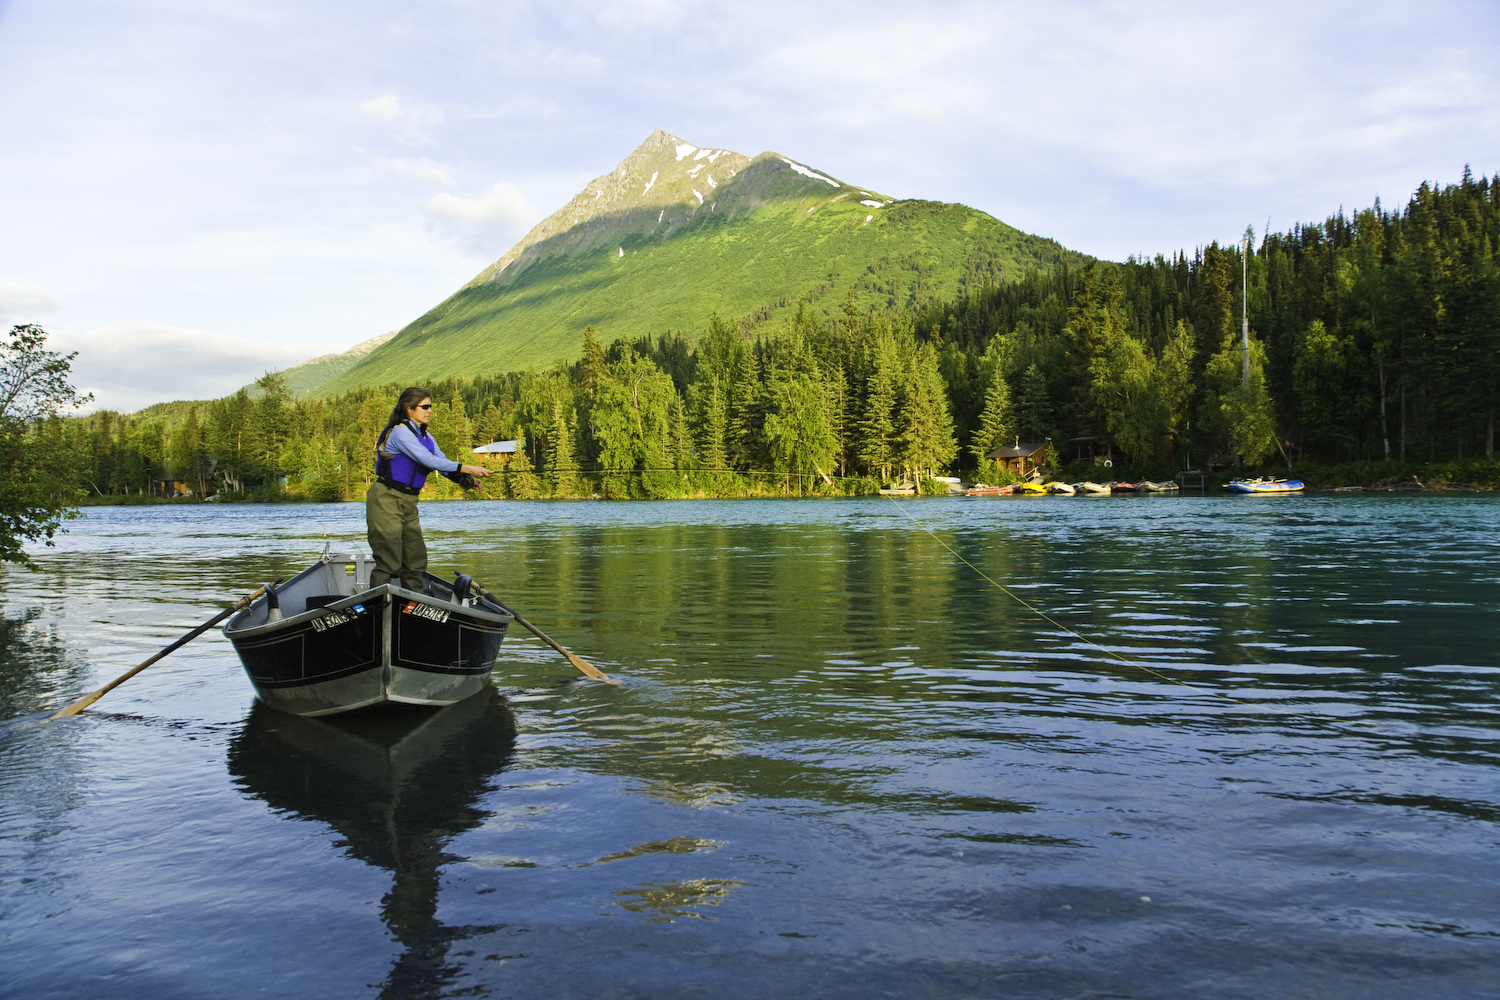 Alaska rivers company fly fishing drift boat alaska for Ak fishing license